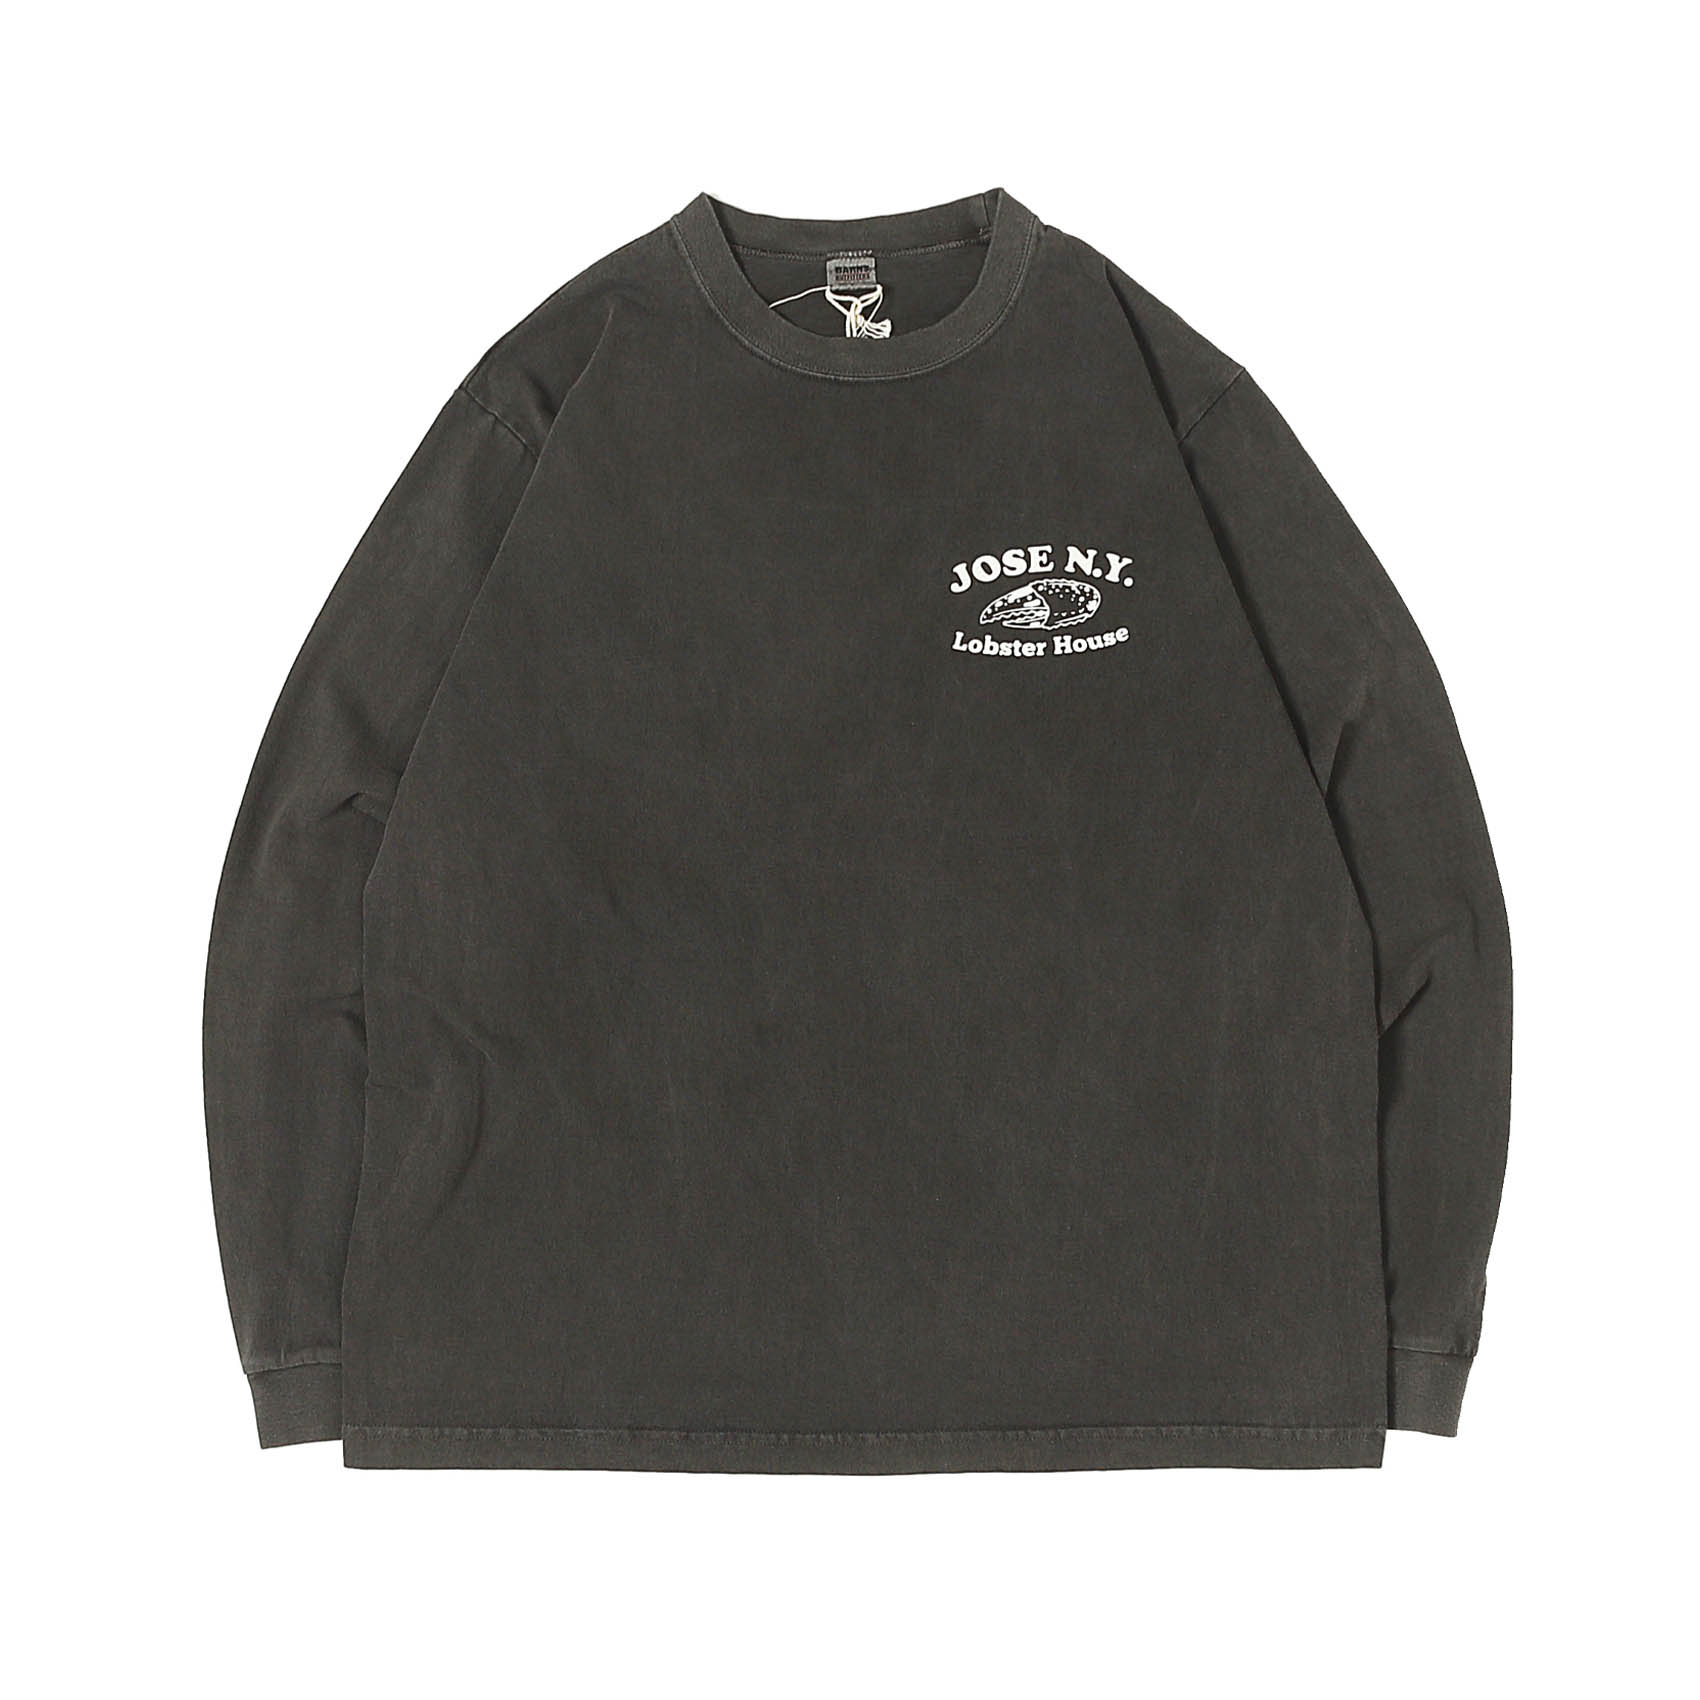 L/S PRINTED TEE - JOSE N.Y BLACK